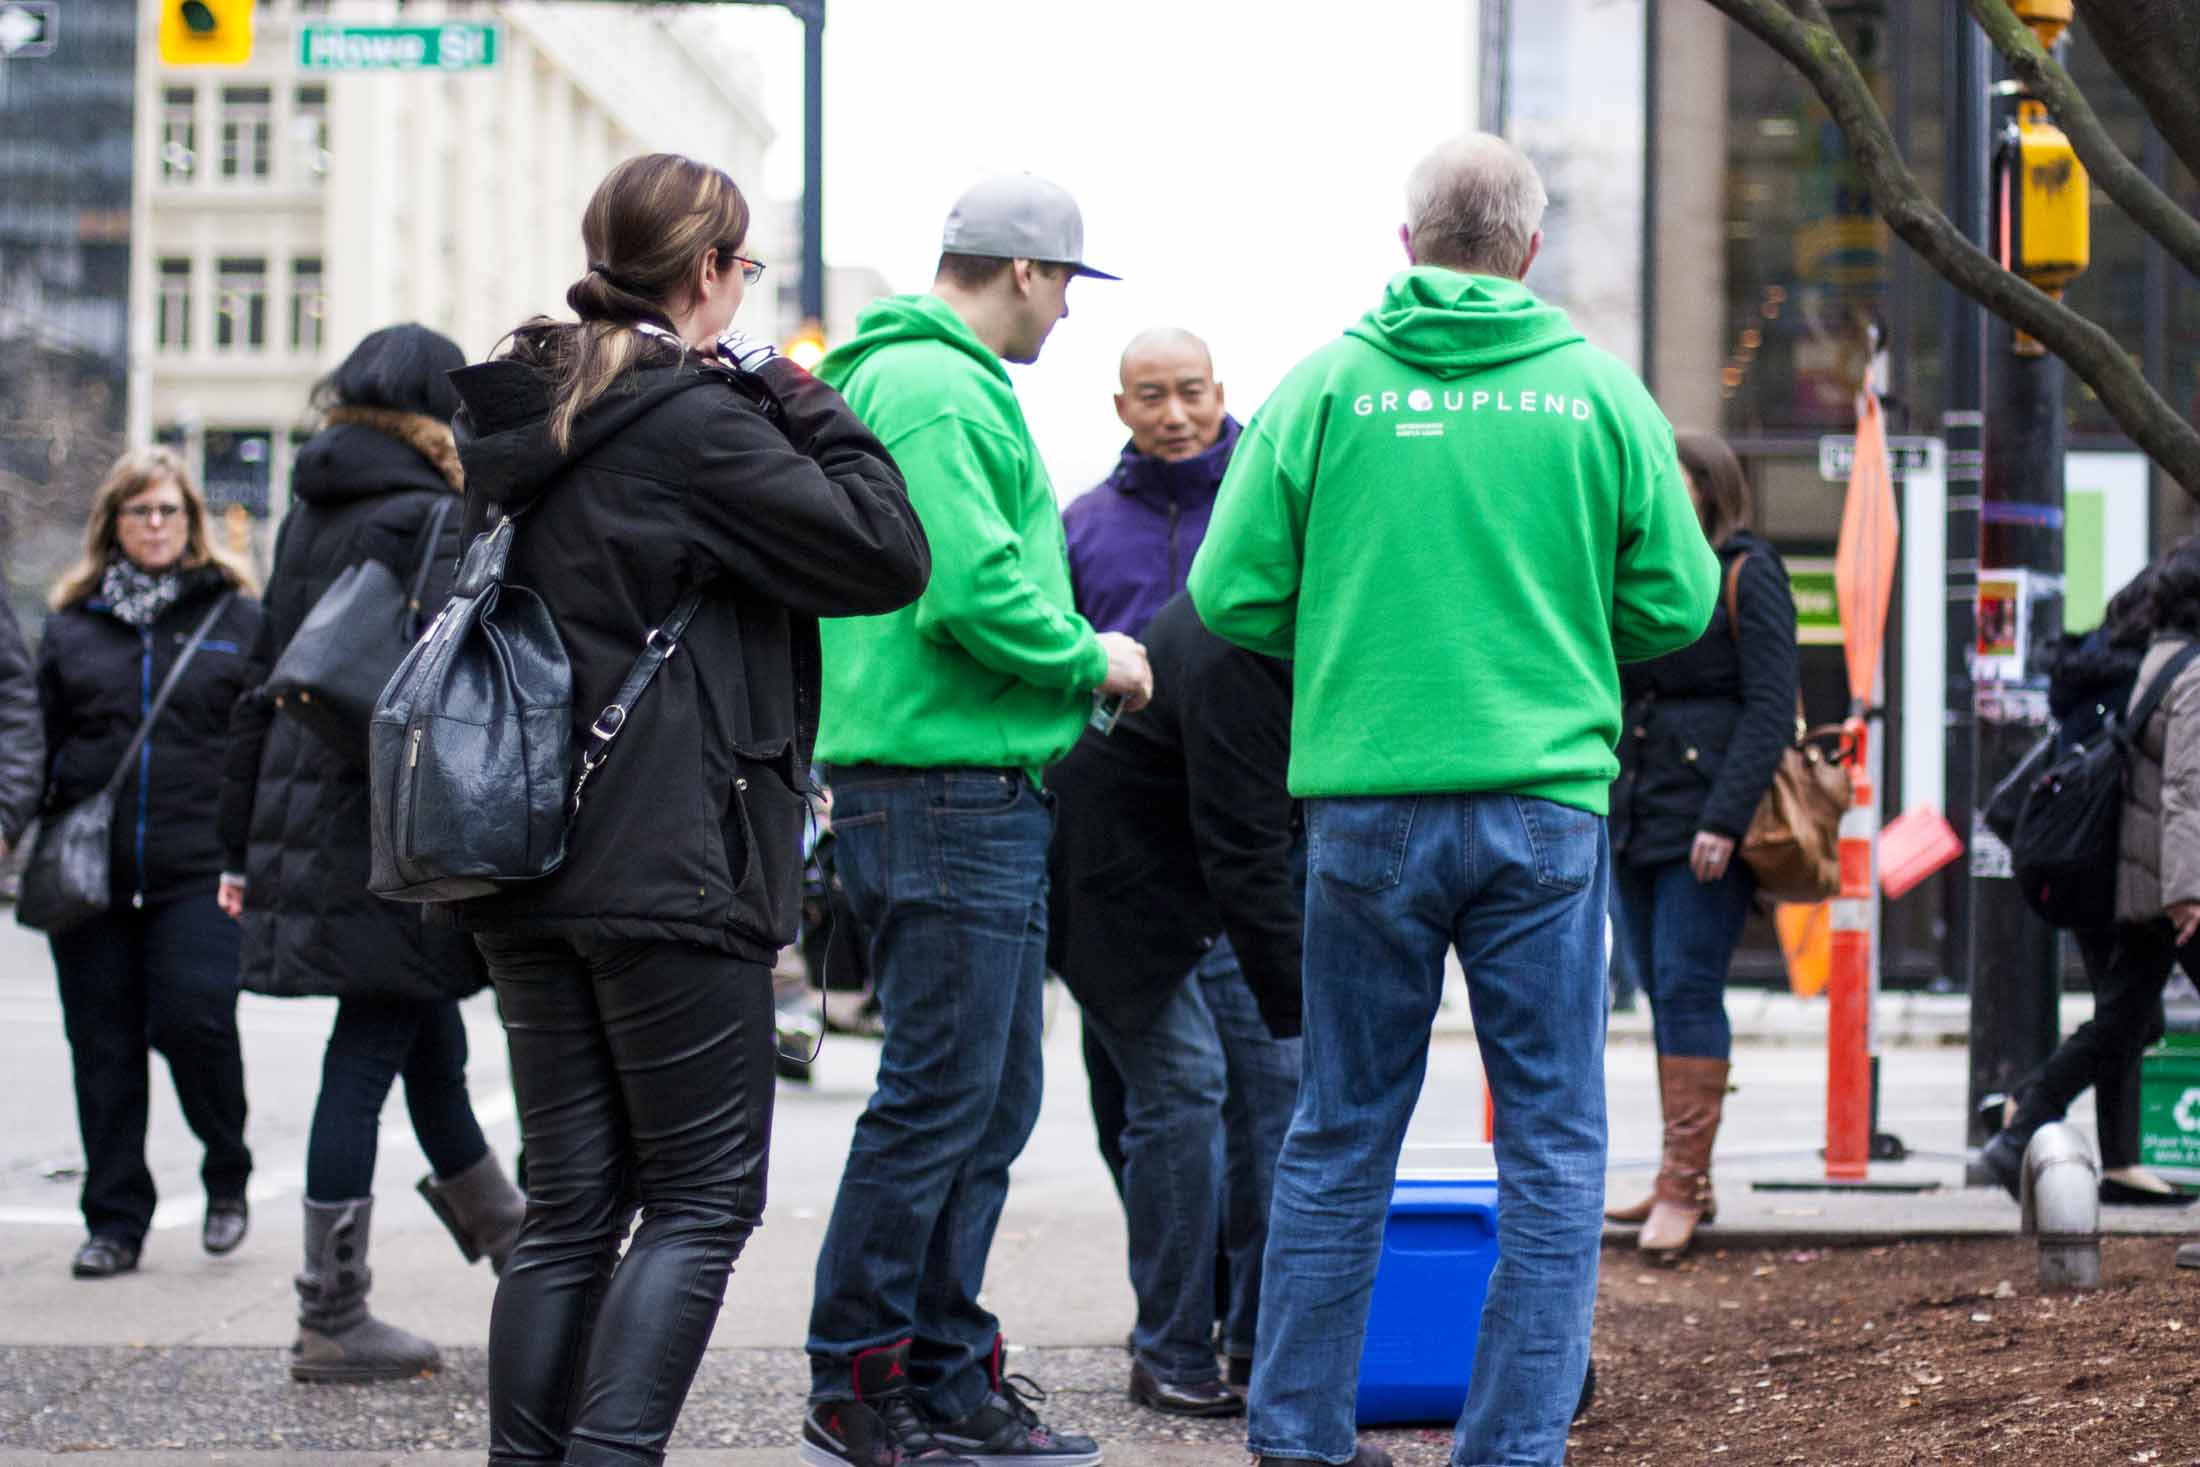 Grouplend team members in neon green branded sweaters at the Vancouver Art Gallery encouraging passerby to participate — by Dima Yagnyuk.